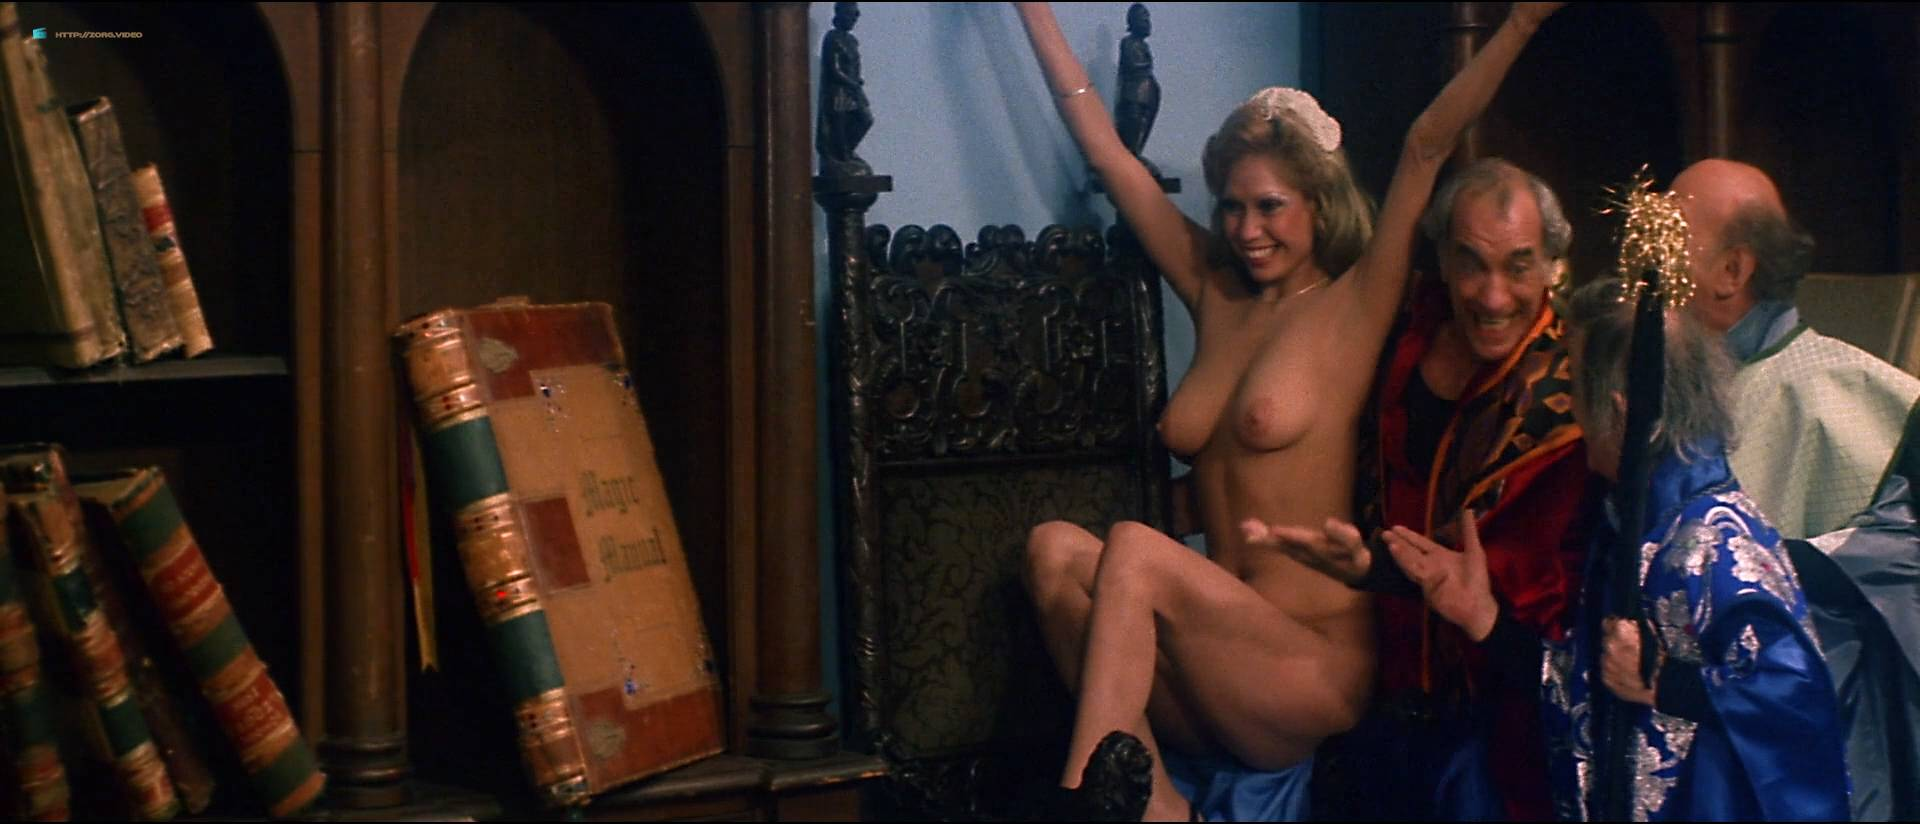 Linnea Quigley nude bush Angela Aames nude full frontal others nude - Fairy Tales (1978) HD 1080p (15)